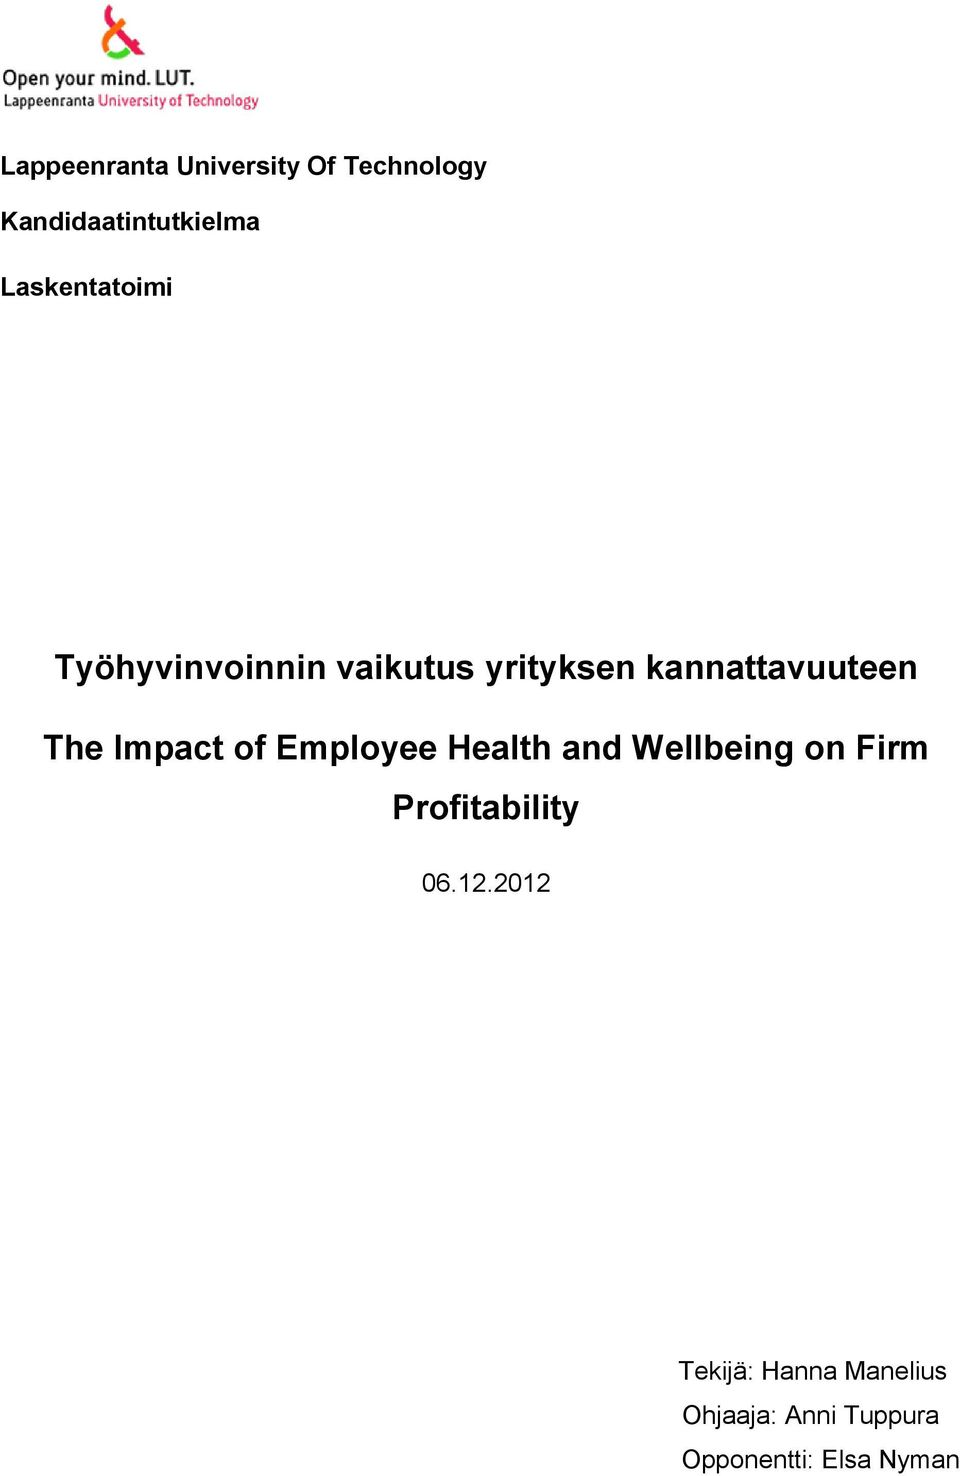 The Impact of Employee Health and Wellbeing on Firm Profitability